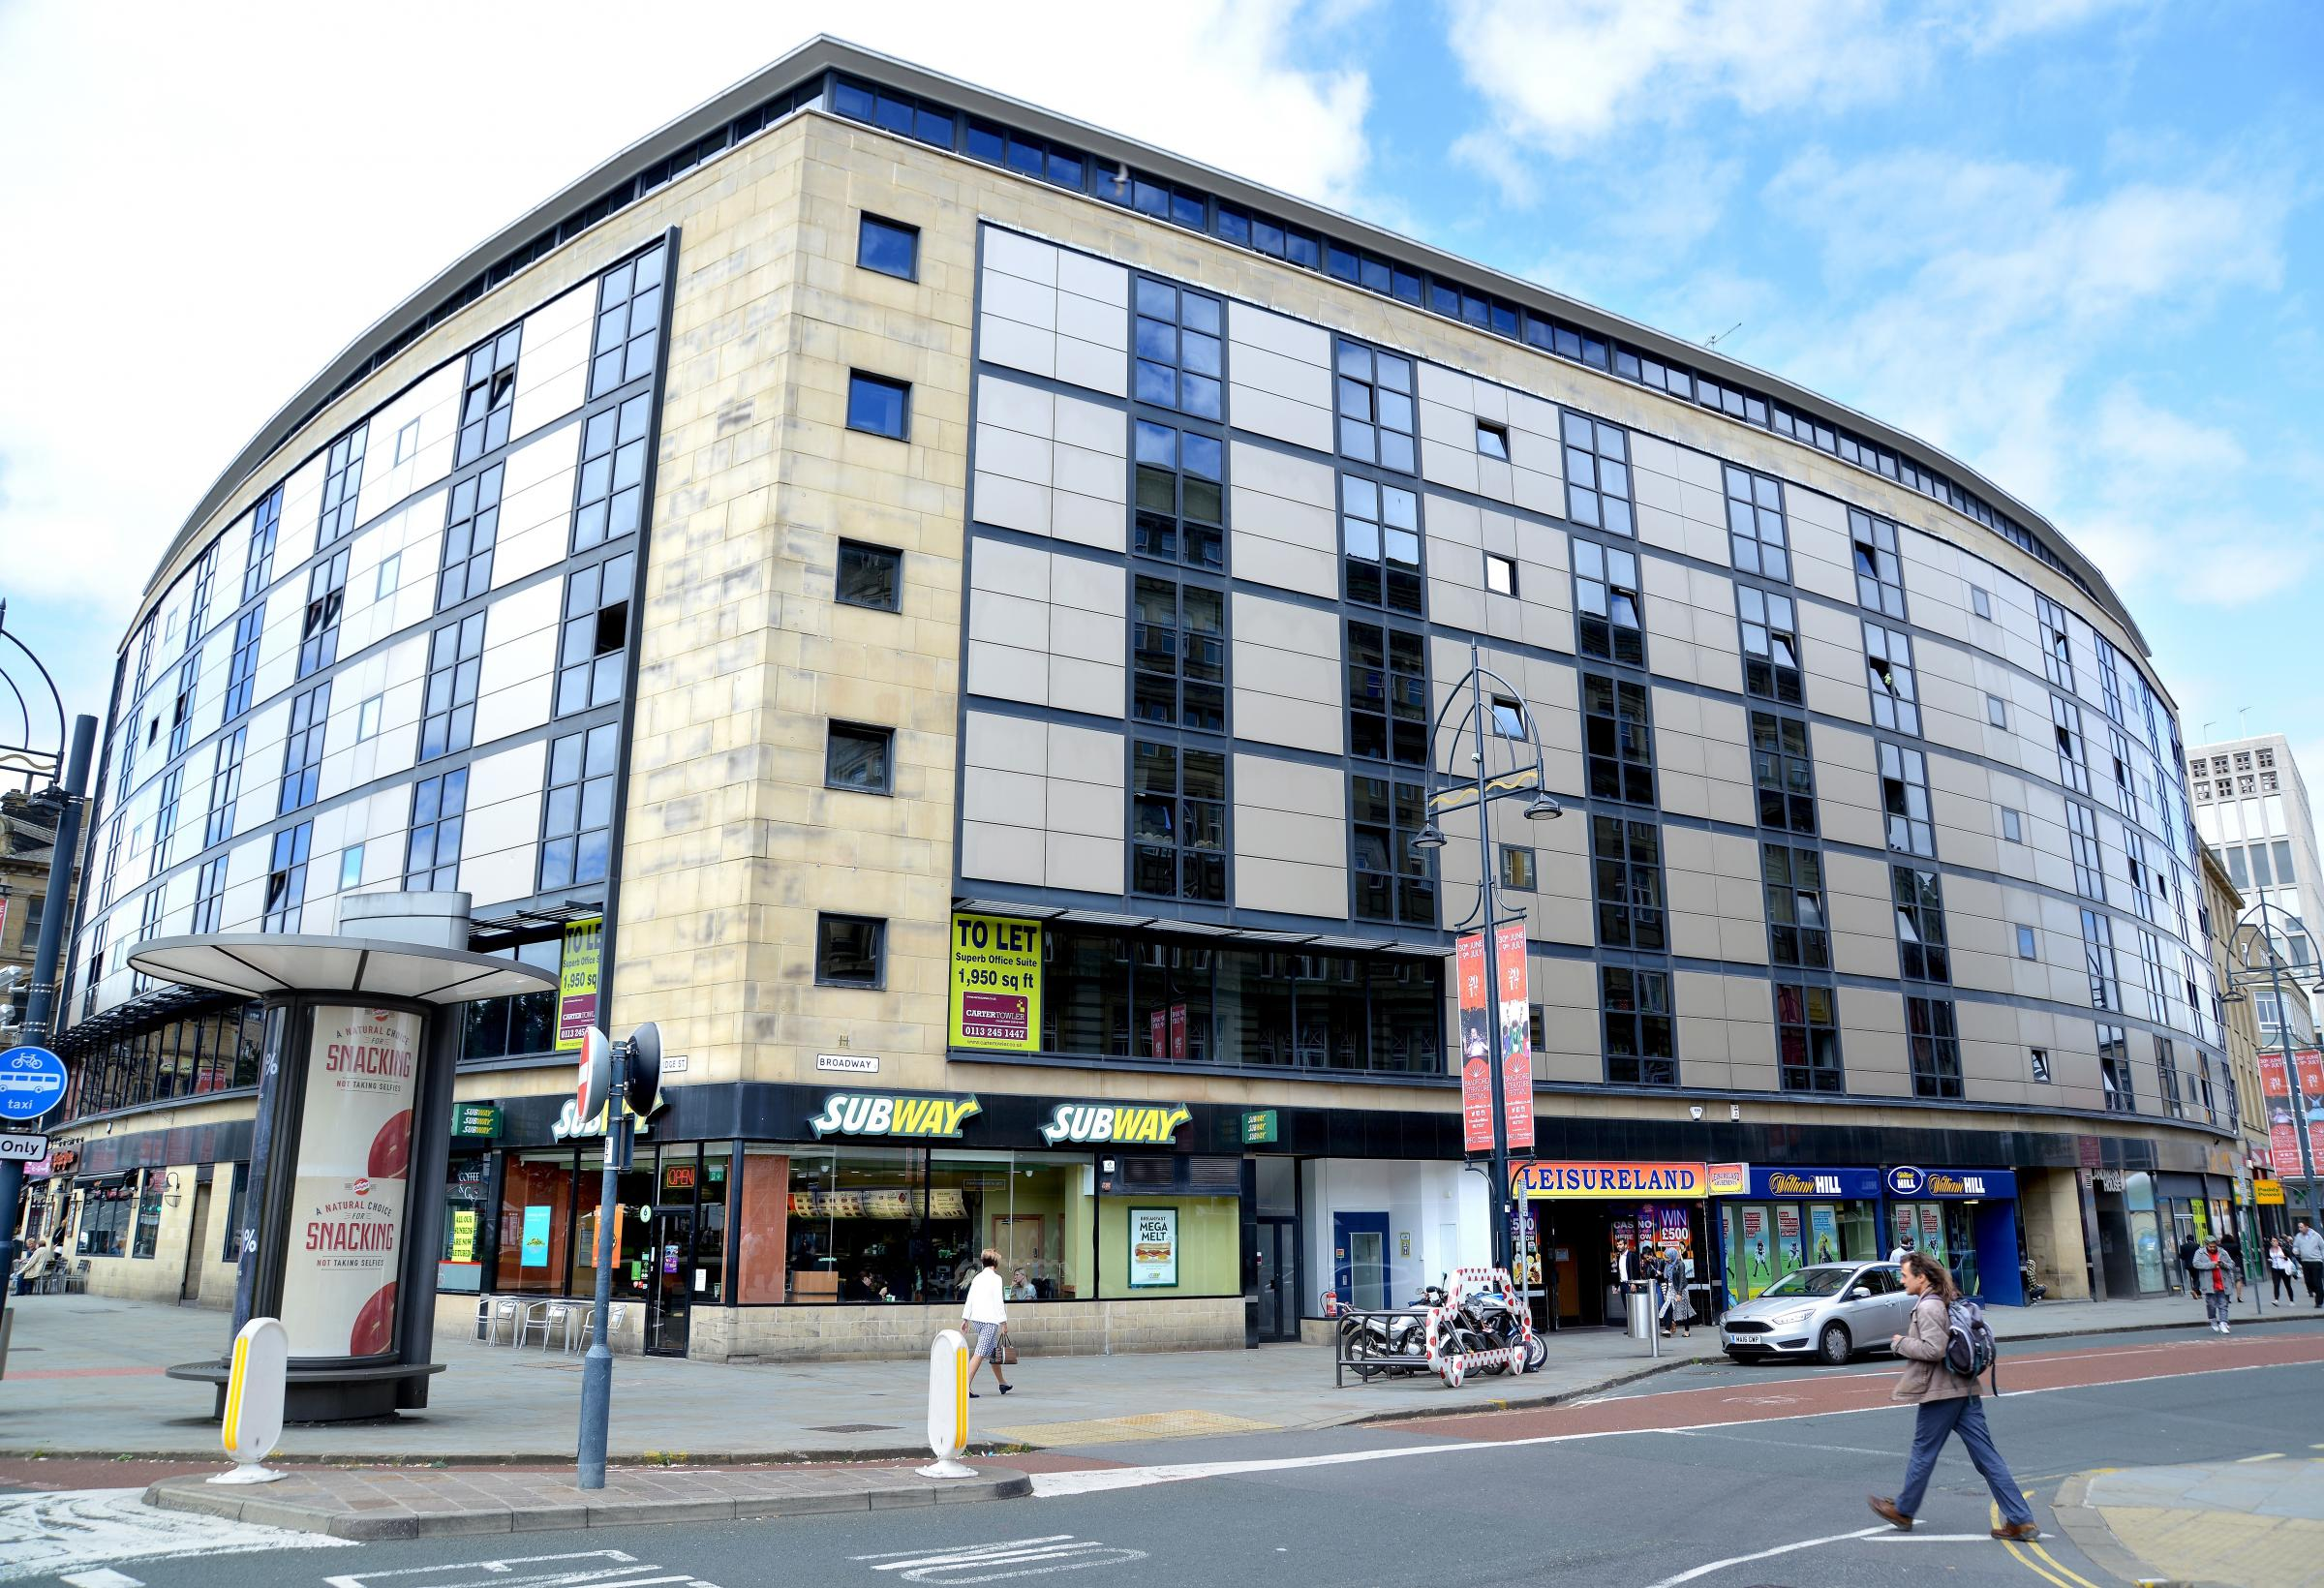 Cladding warning issued for two Bradford high-rise buildings